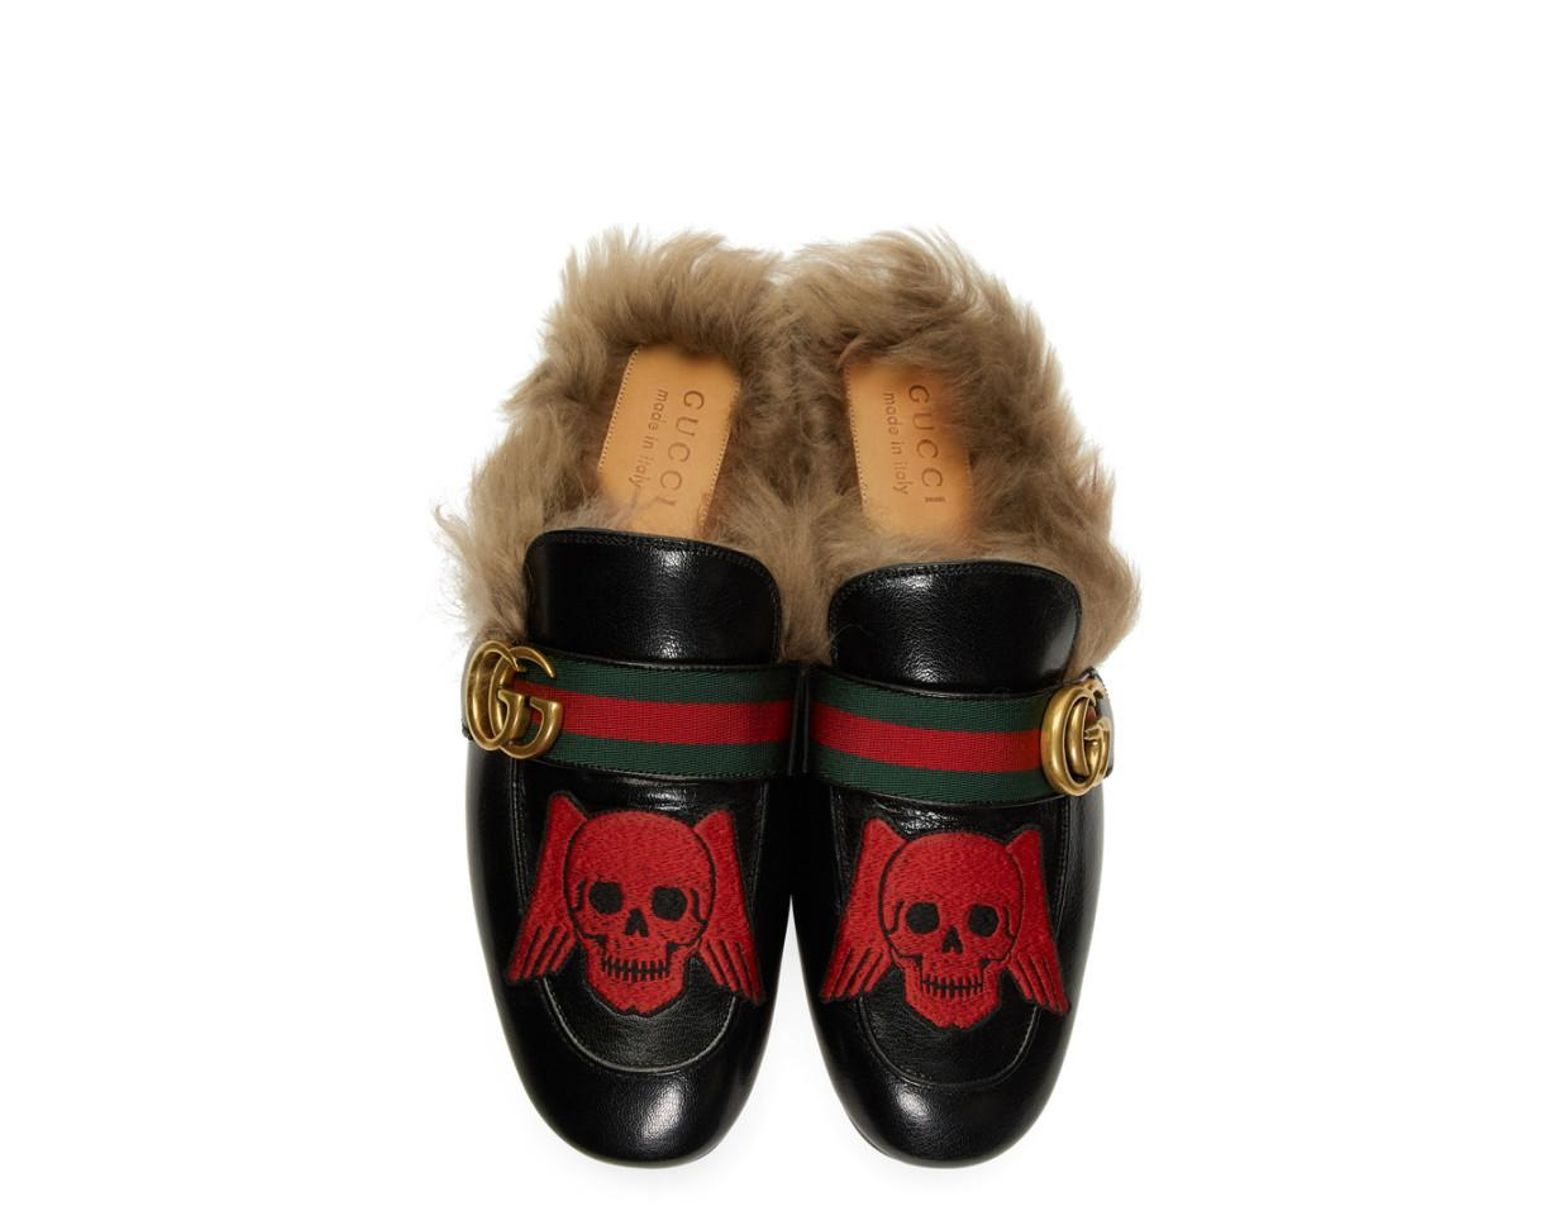 bb3ec847a Gucci Black Skull New Princetown Loafers in Black for Men - Lyst